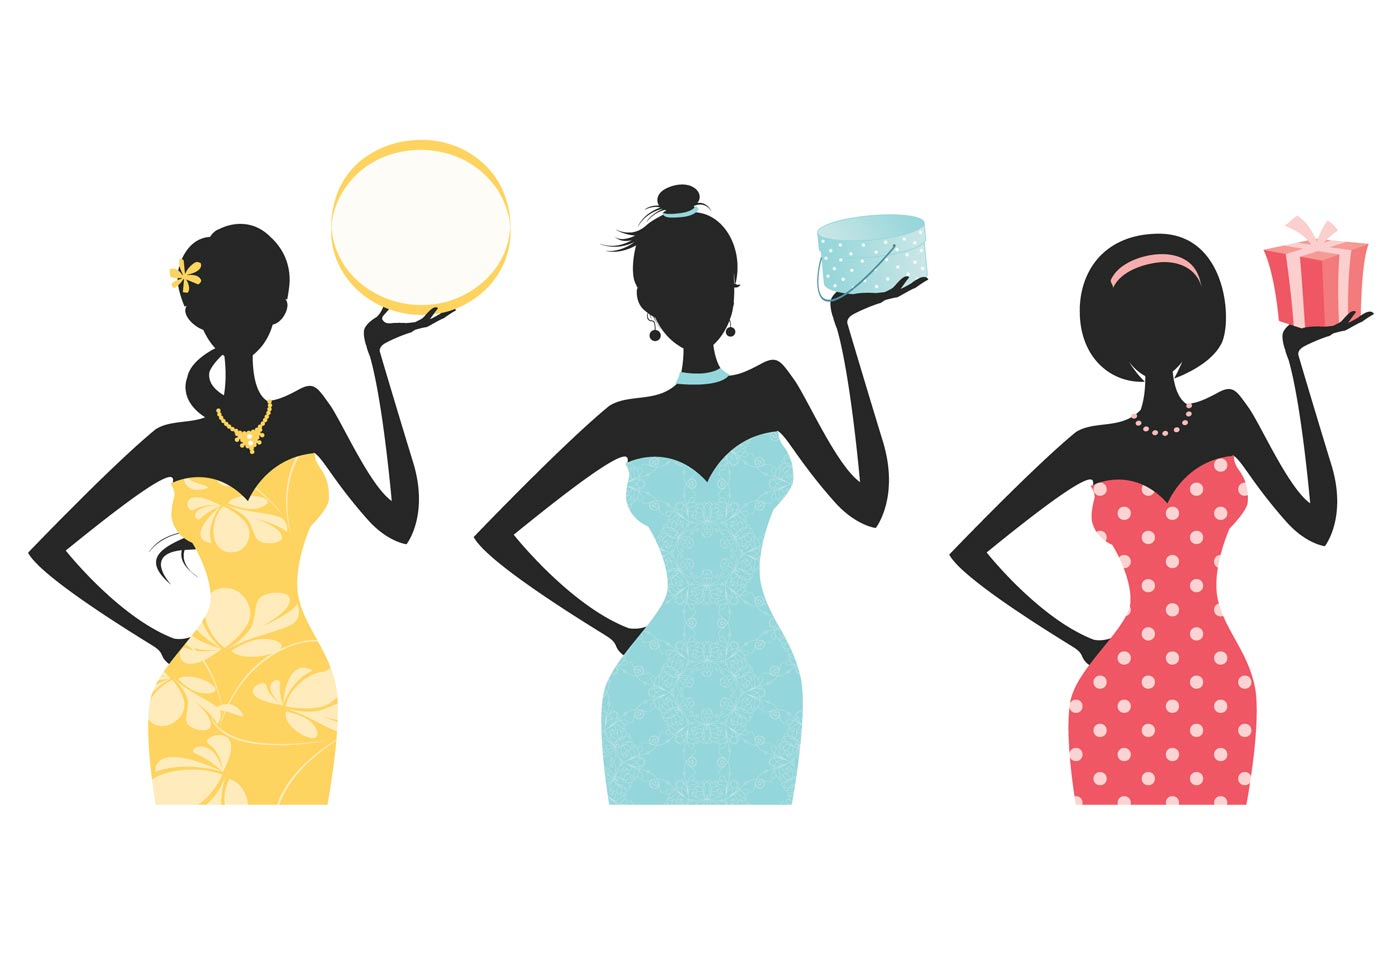 1400x980 Fashionista Women Silhouette Brushes And Background Pack